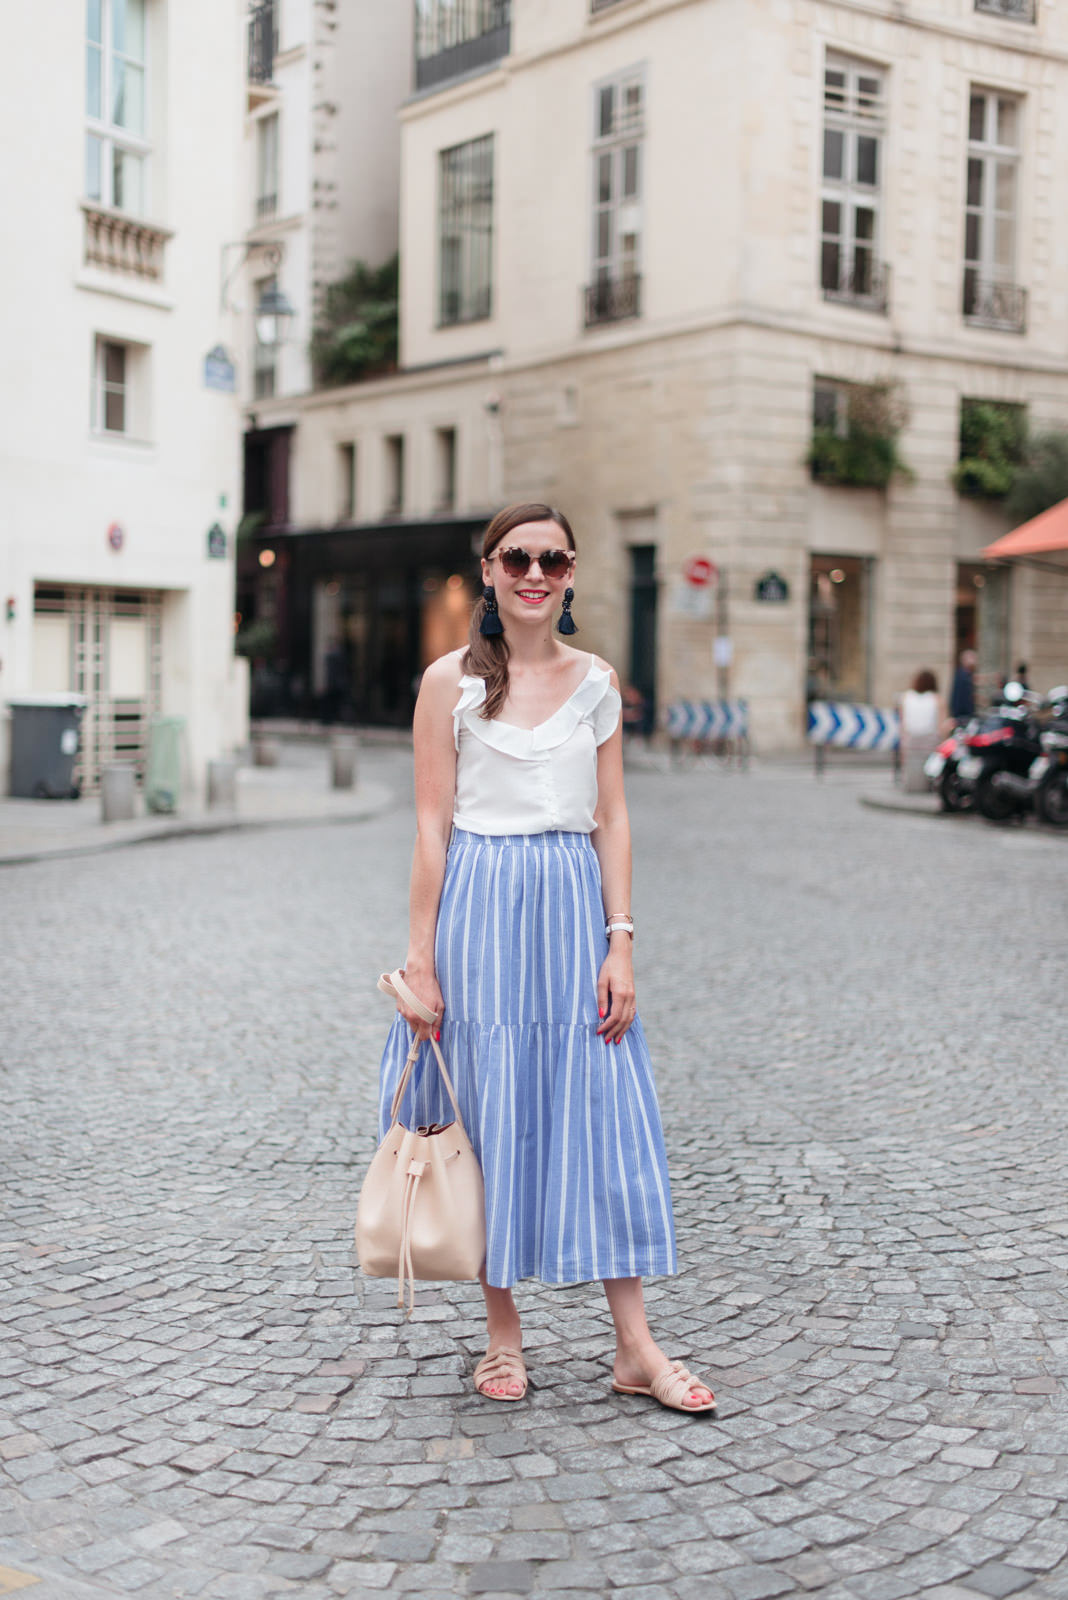 Blog-Mode-And-The-City-Looks-l-ete-en-jupe-longue-7